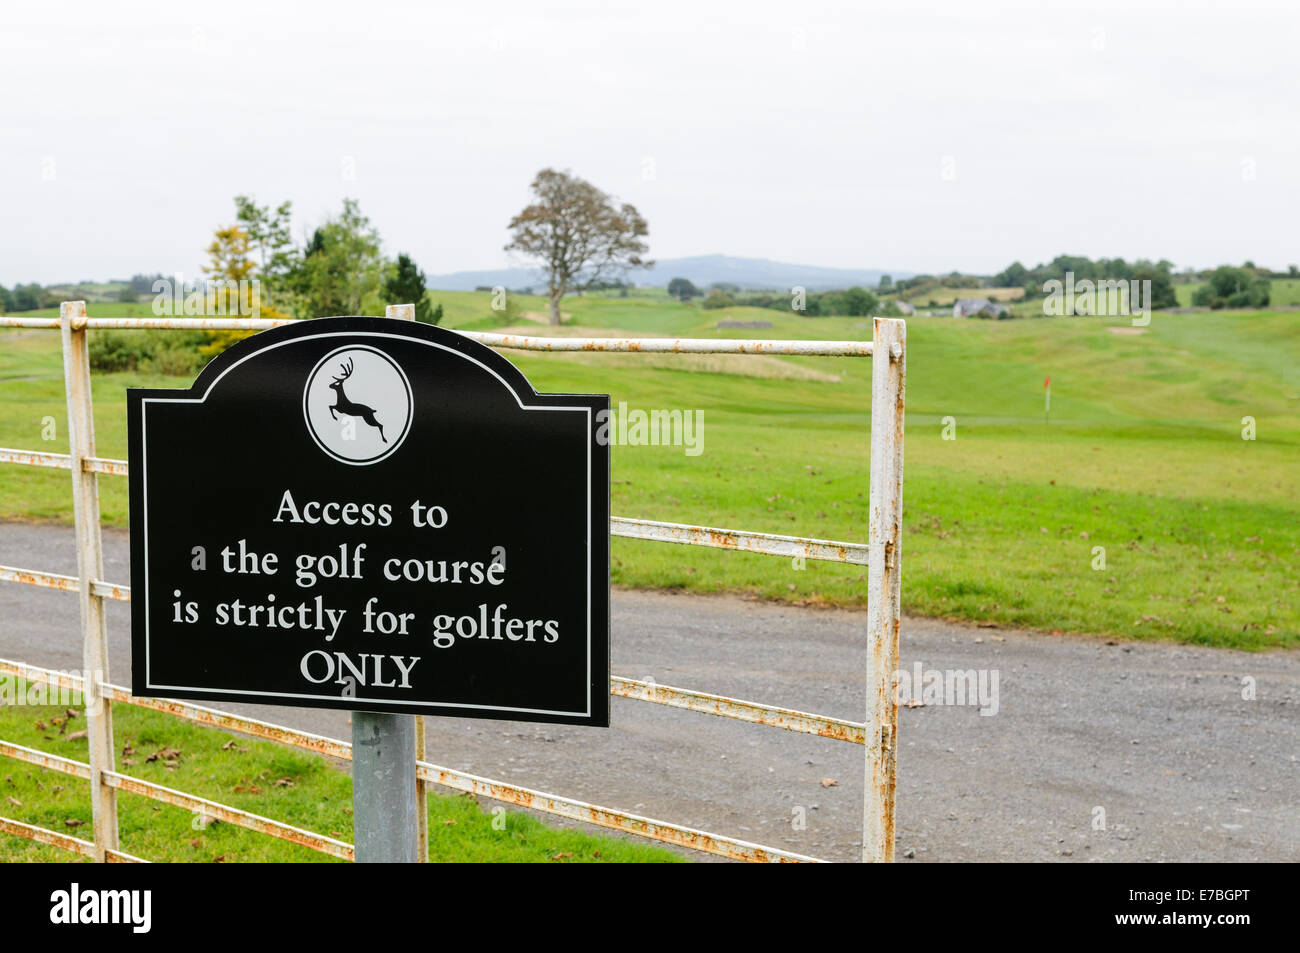 Sign at a golf course warning that only golfers are permitted onto the course - Stock Image